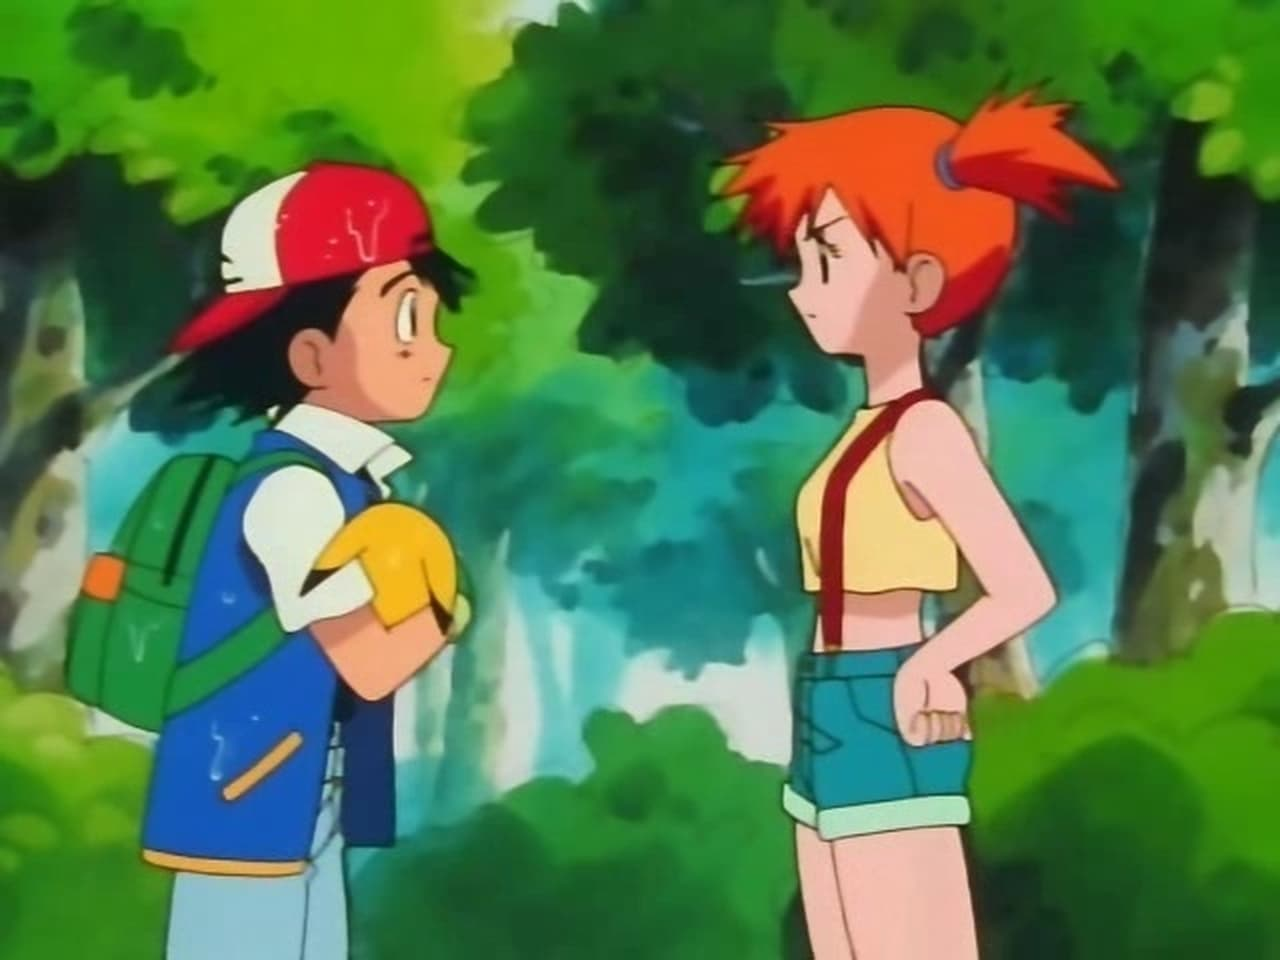 Pokémon - Season 1 Episode 1 : Pokémon! I Choose You! (2020)